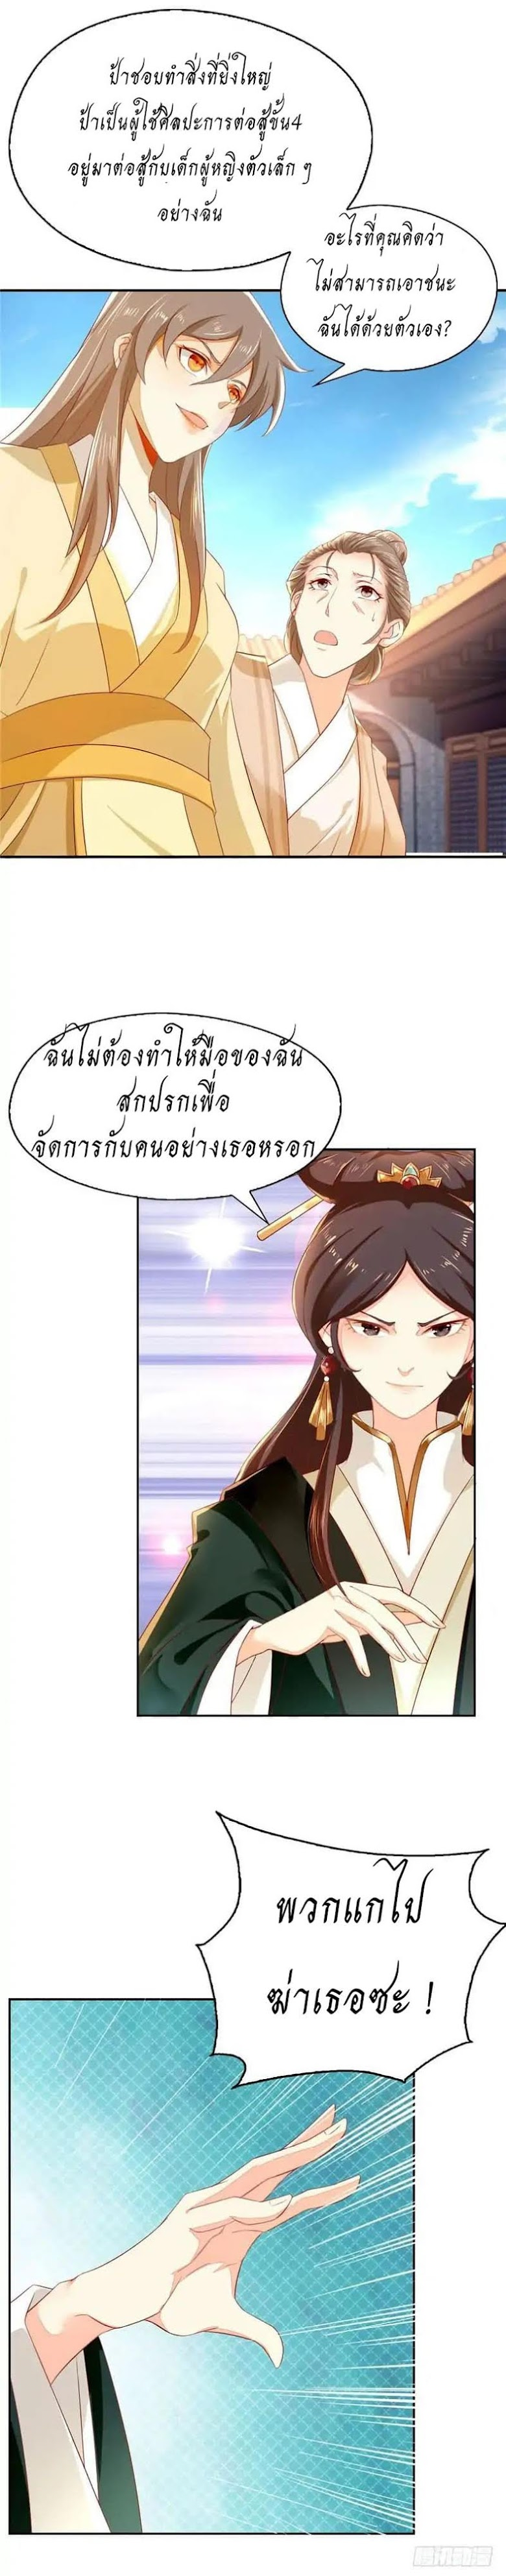 The Evil King s Wicked Consort - หน้า 5